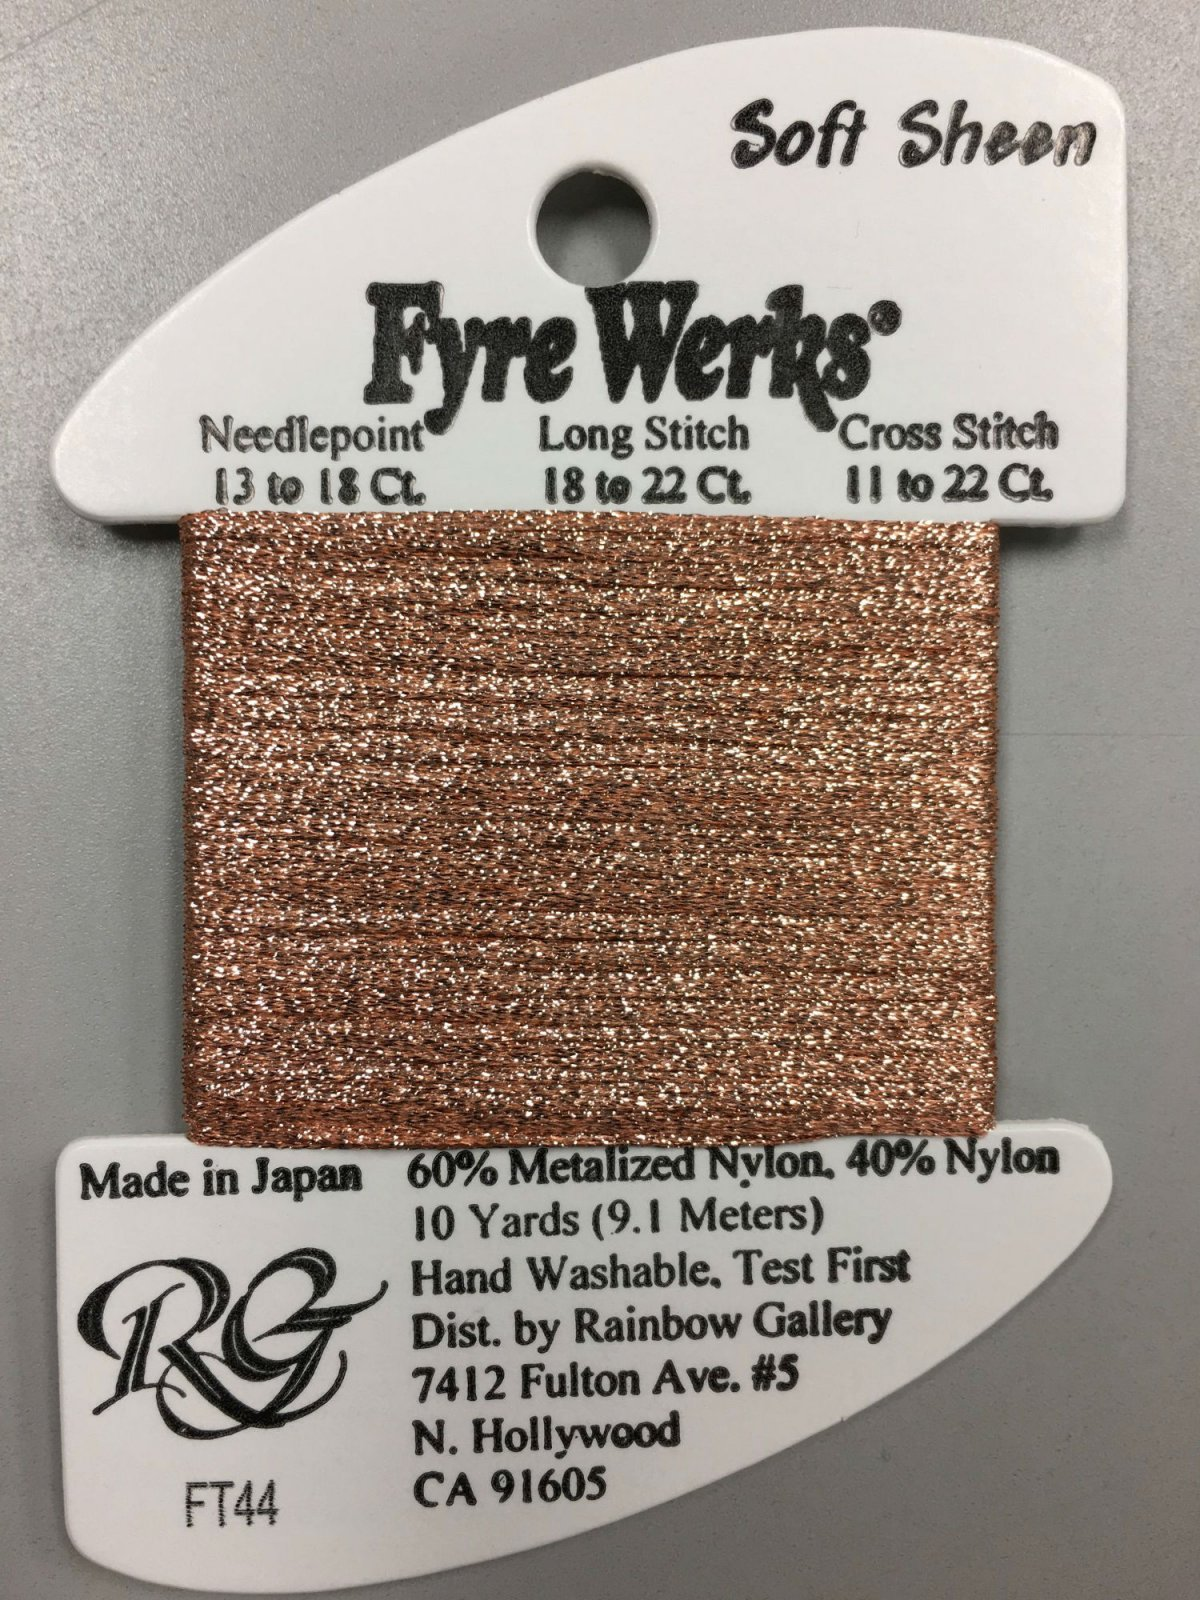 Fyre Werks Soft Sheen FT44